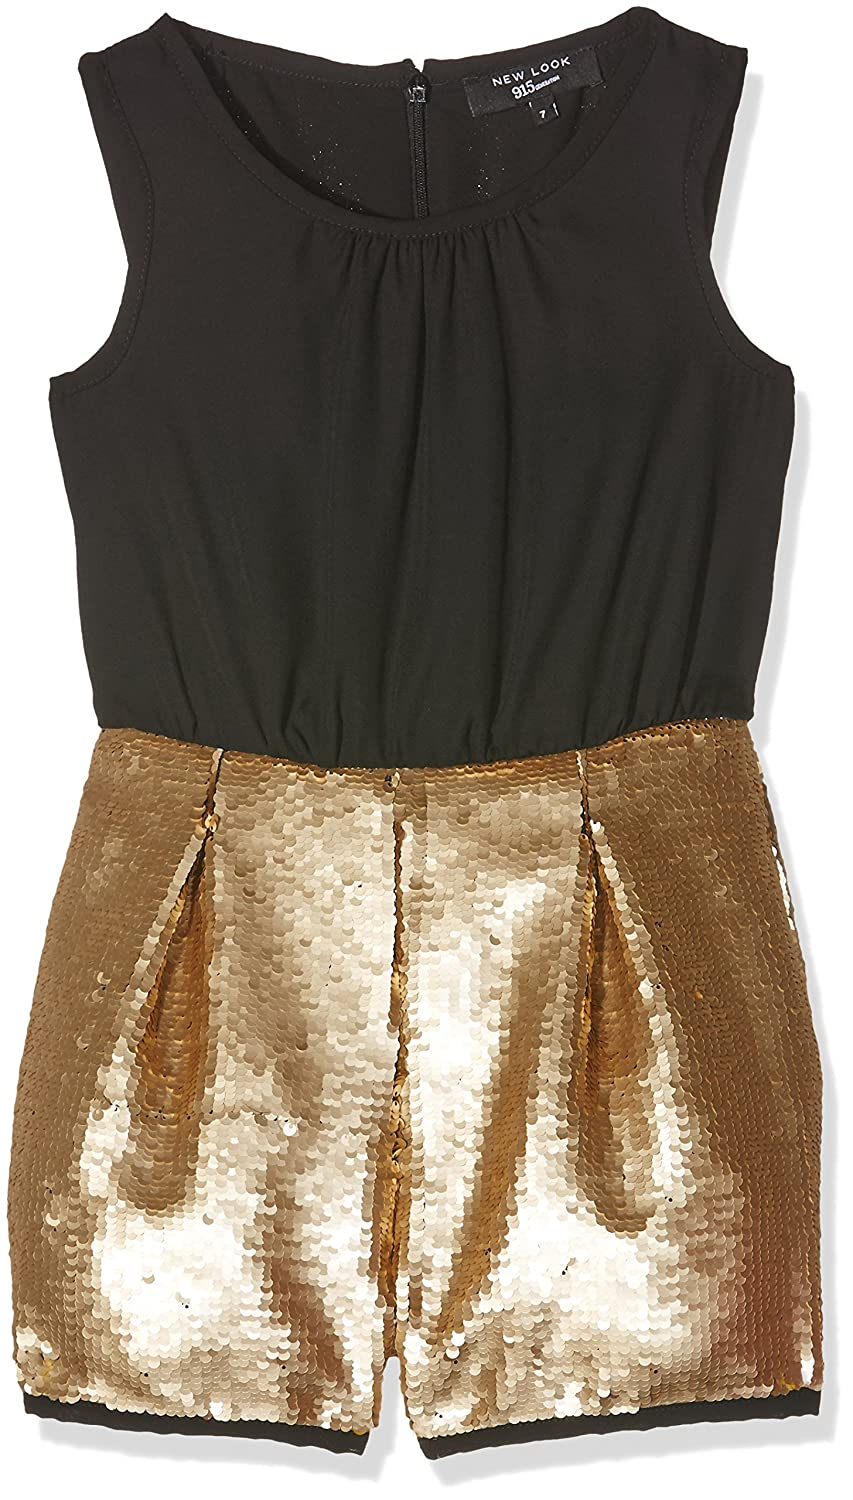 f68dfc562c New Look 915 Girl s 2 in 1 Sequin Playsuit Dresses